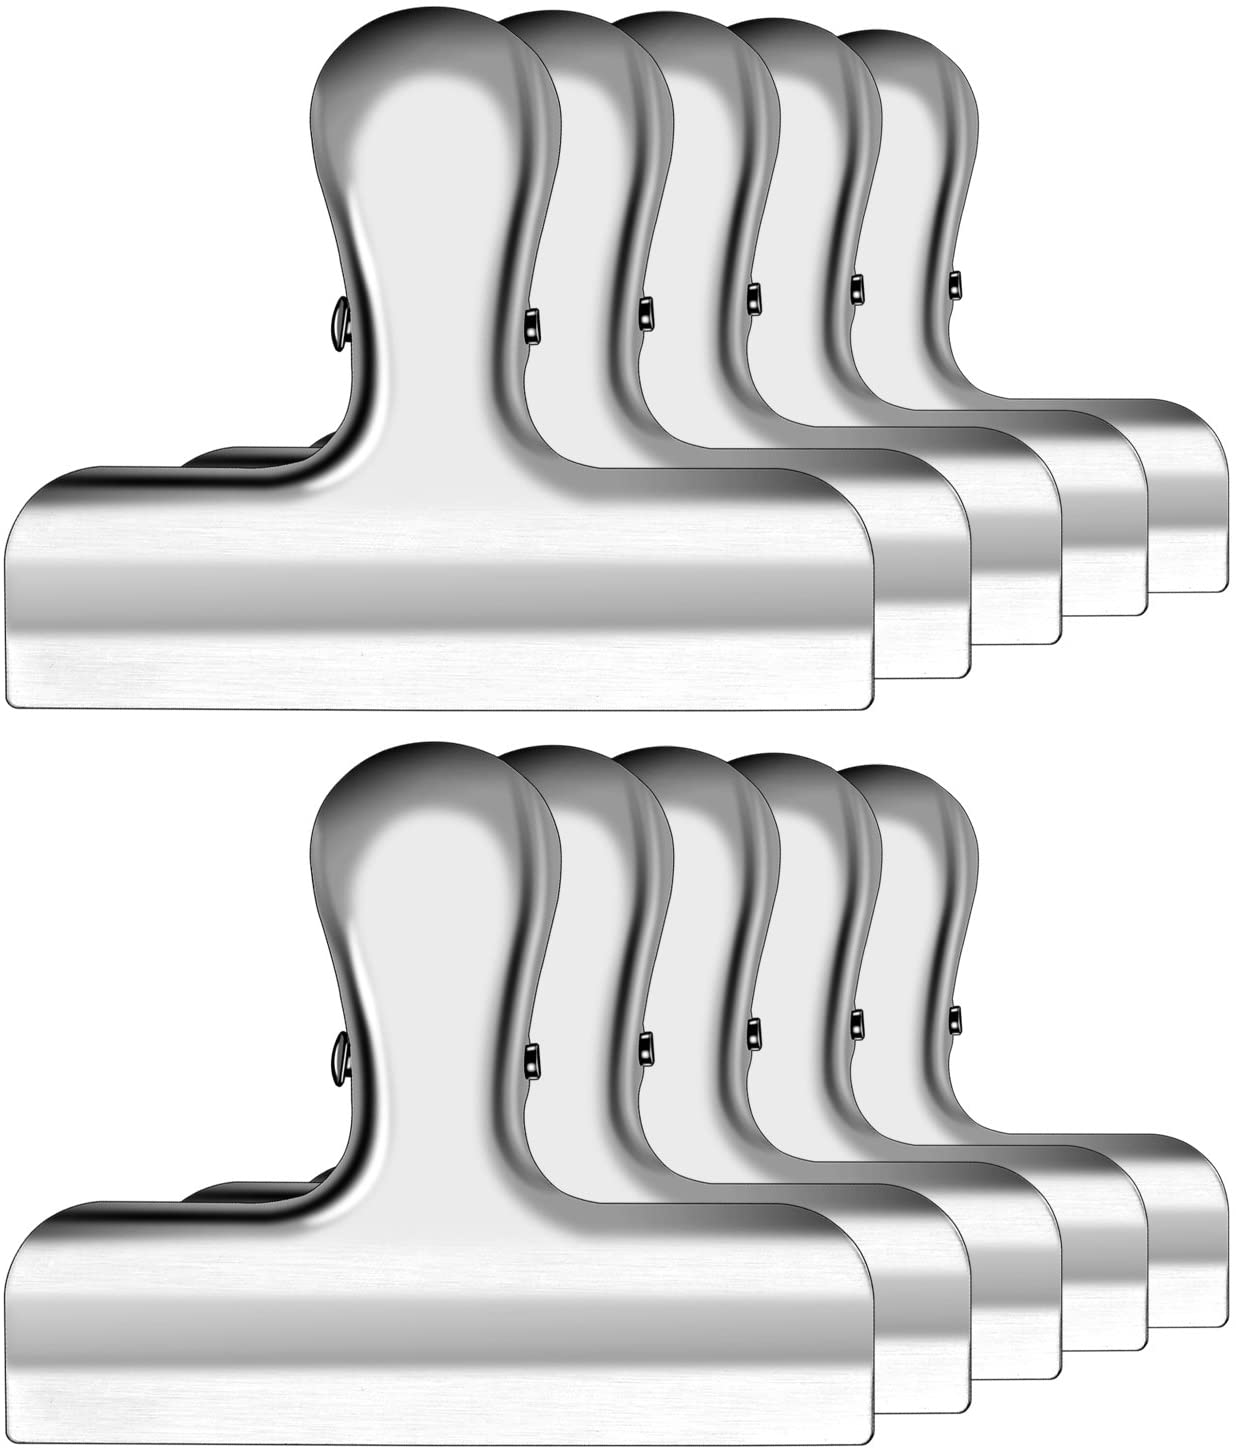 IPOW 10 Pack 3 Inch Wide Stainless Steel Solid Fresh-Keeping Chip Clips Heavy Duty Food Bag Clamp,All-Purpose Air Tight Grip Clips for Kitchen Office to Seal Coffee Bags,Paper Sheets